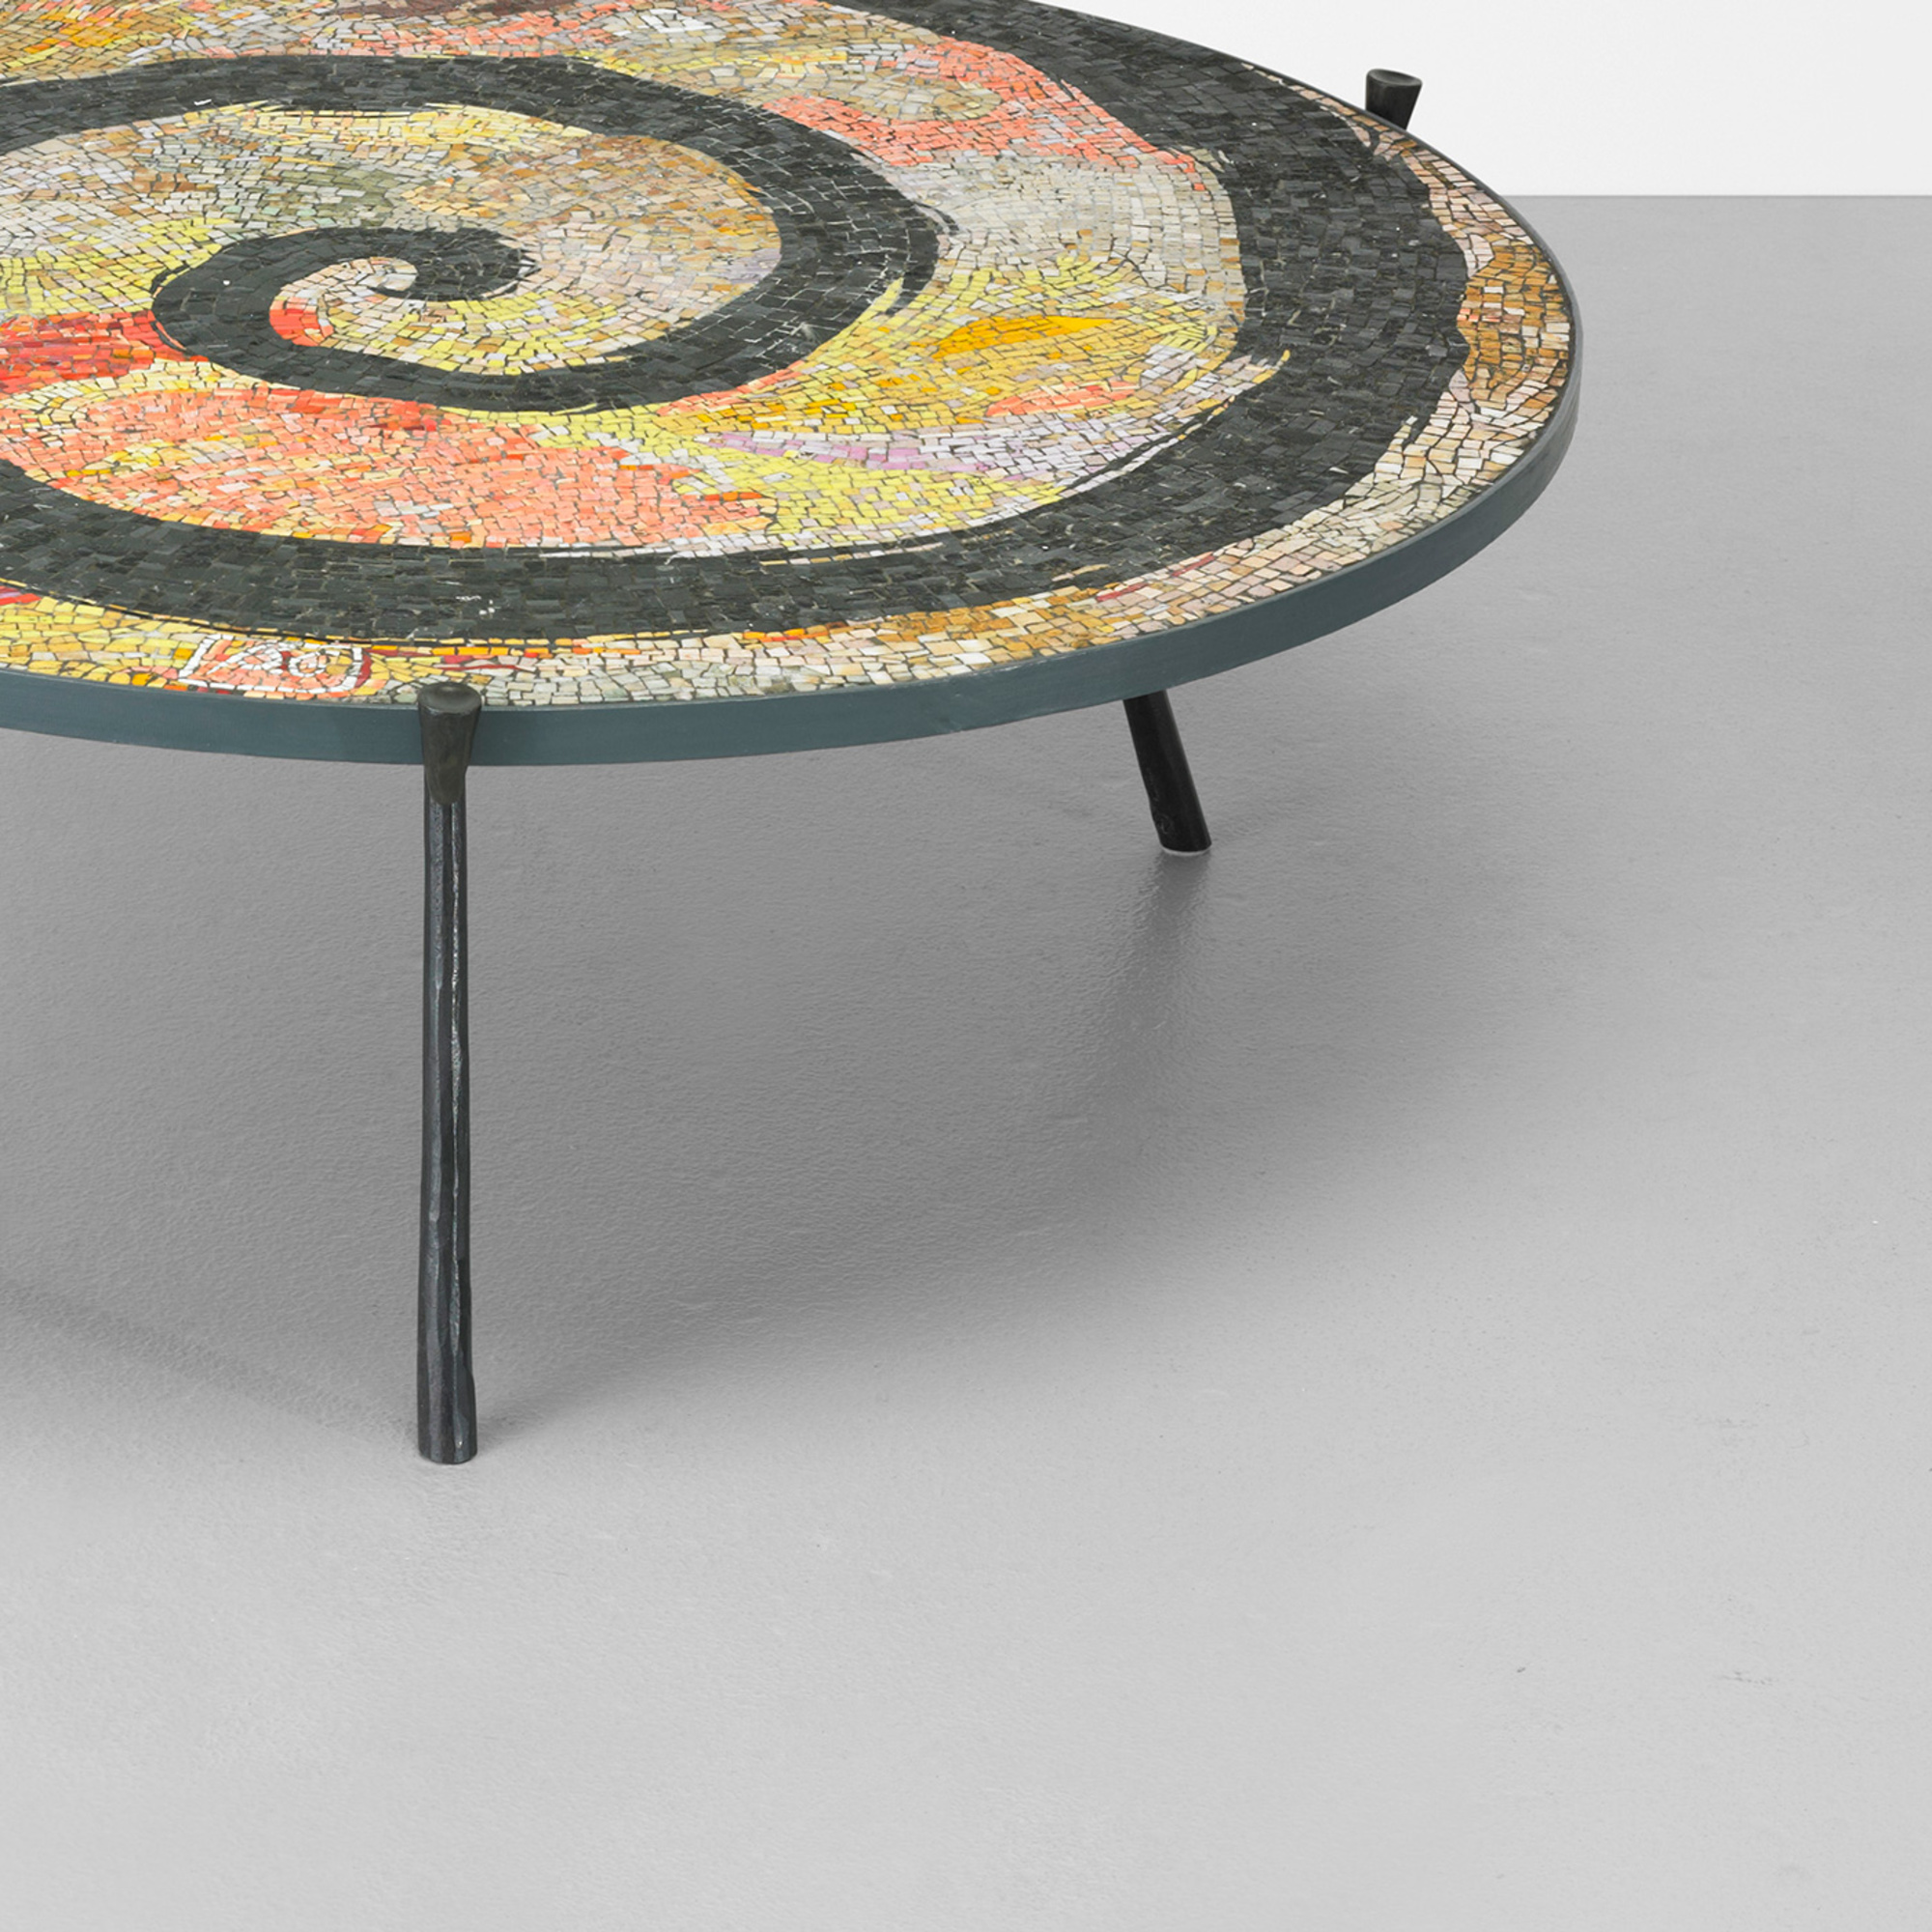 332 Elizabeth Garouste And Mattia Bonetti Spiral Coffee Table 5 Of